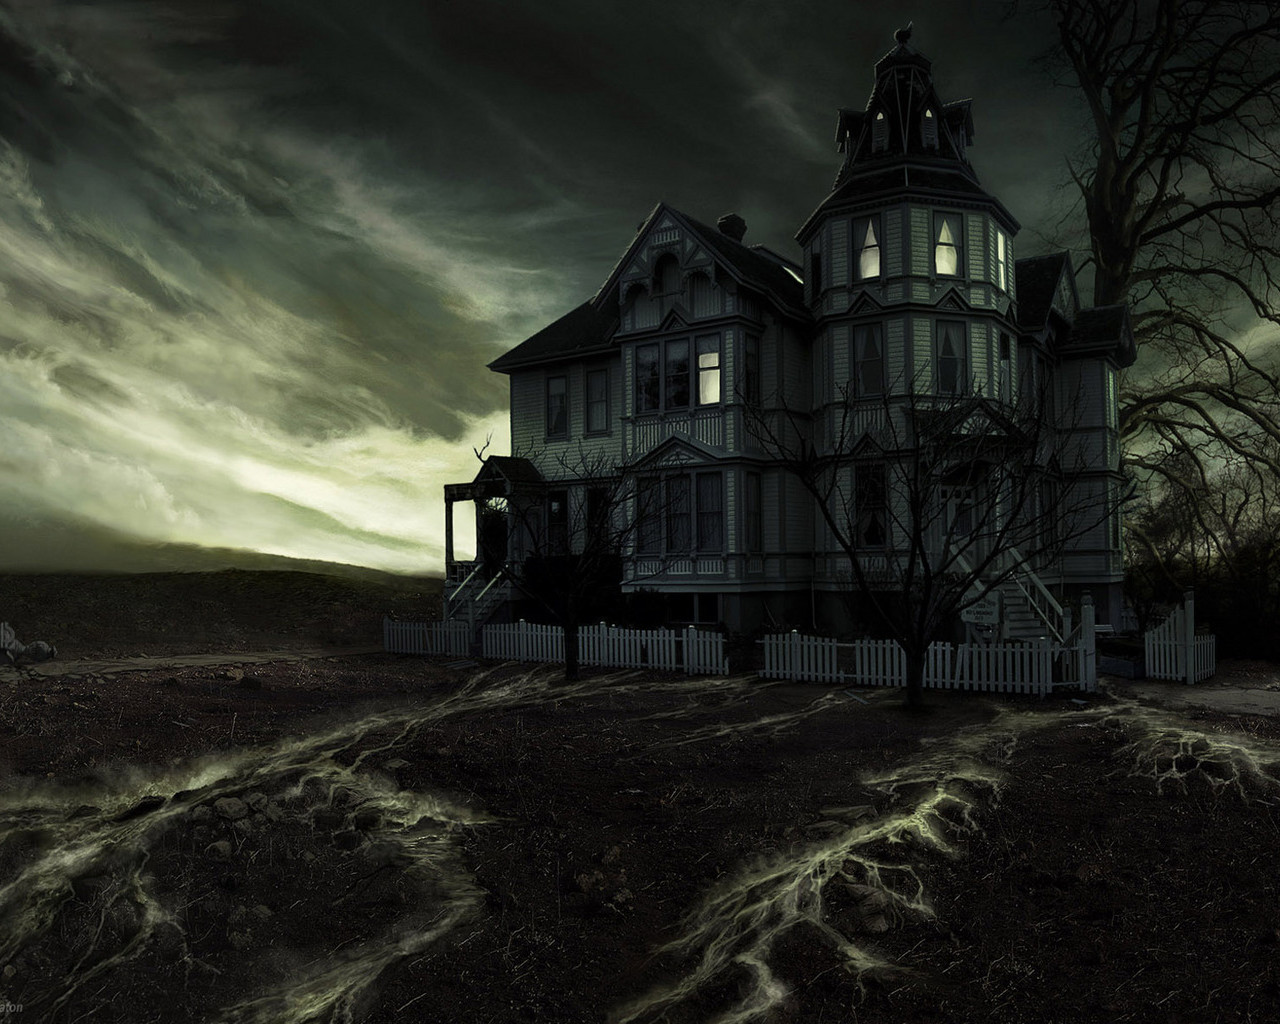 Gothic images Dark places HD wallpaper and background photos 28236594 1280x1024